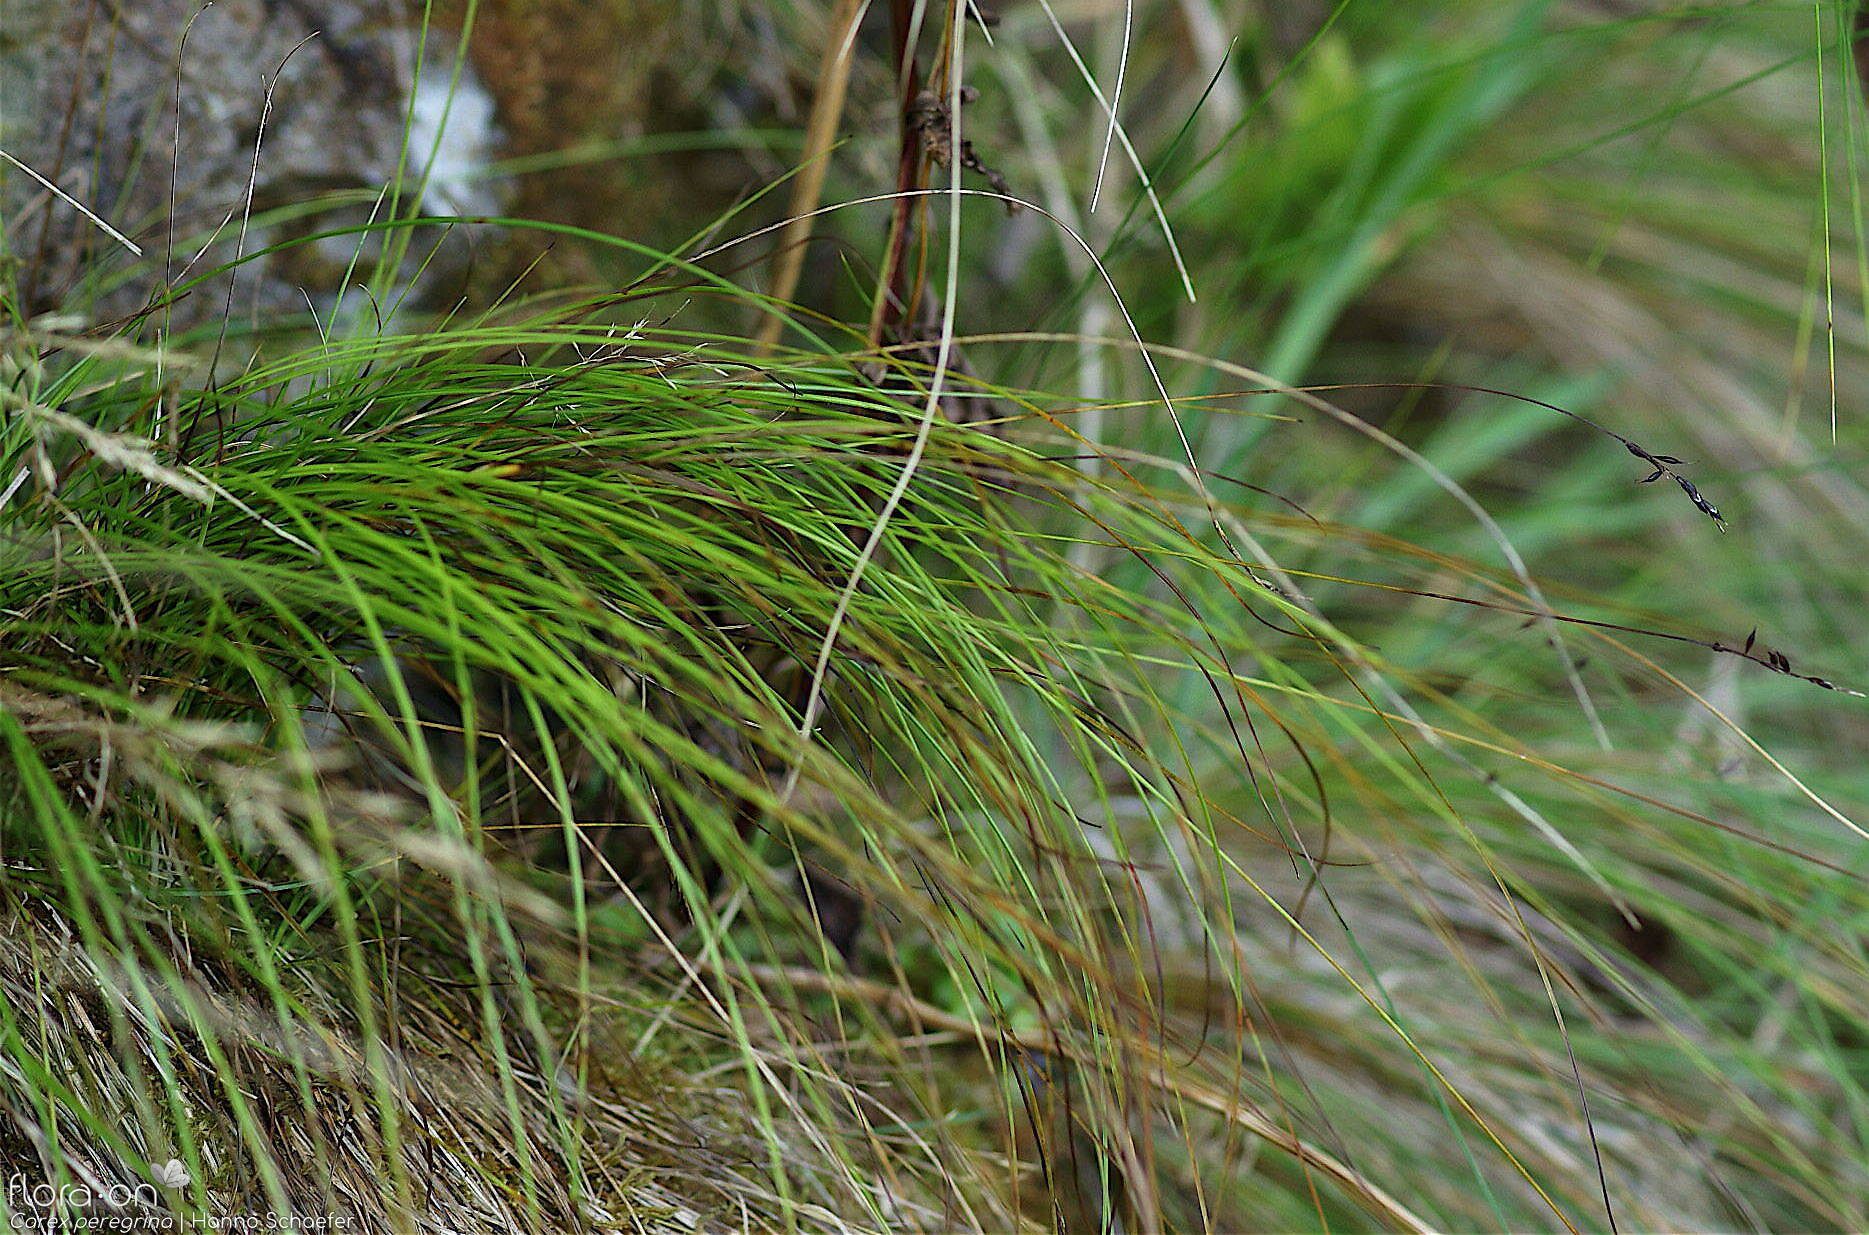 Carex peregrina -  | Hanno Schaefer; CC BY-NC 4.0